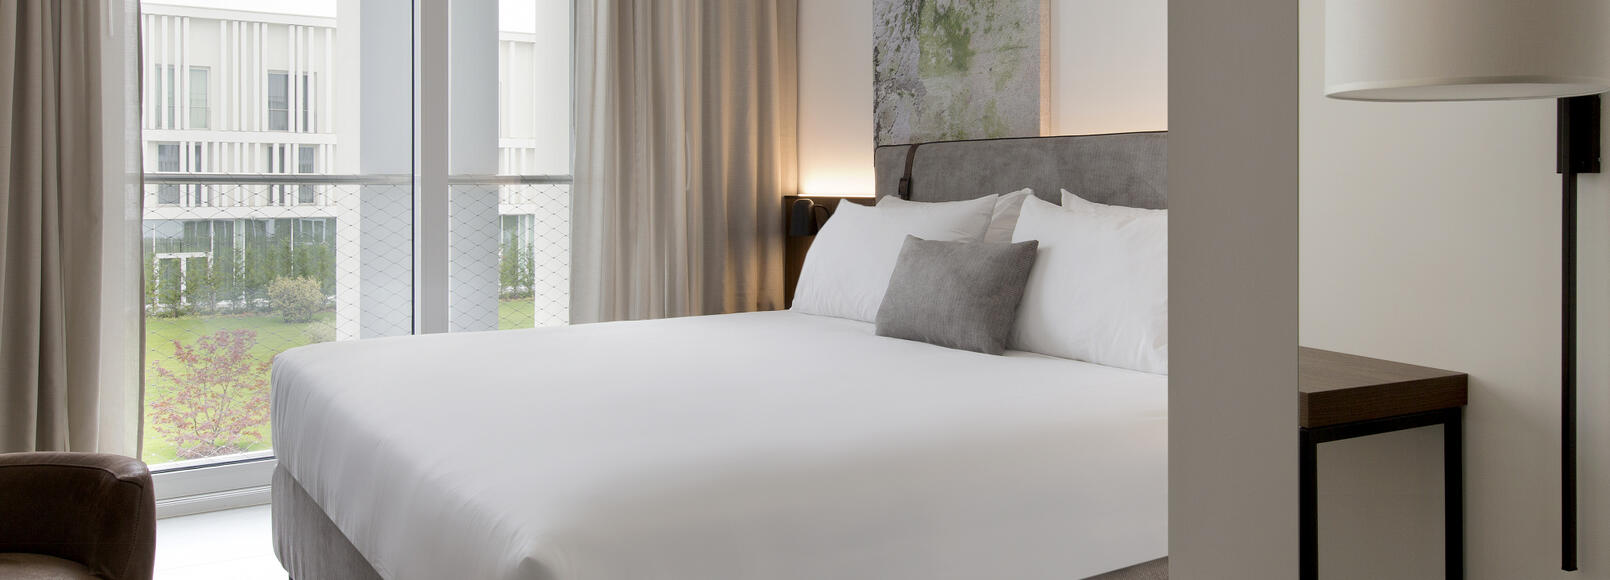 jhotel en offer-juve-parma-in-turino-hotel-with-match-tickets 012